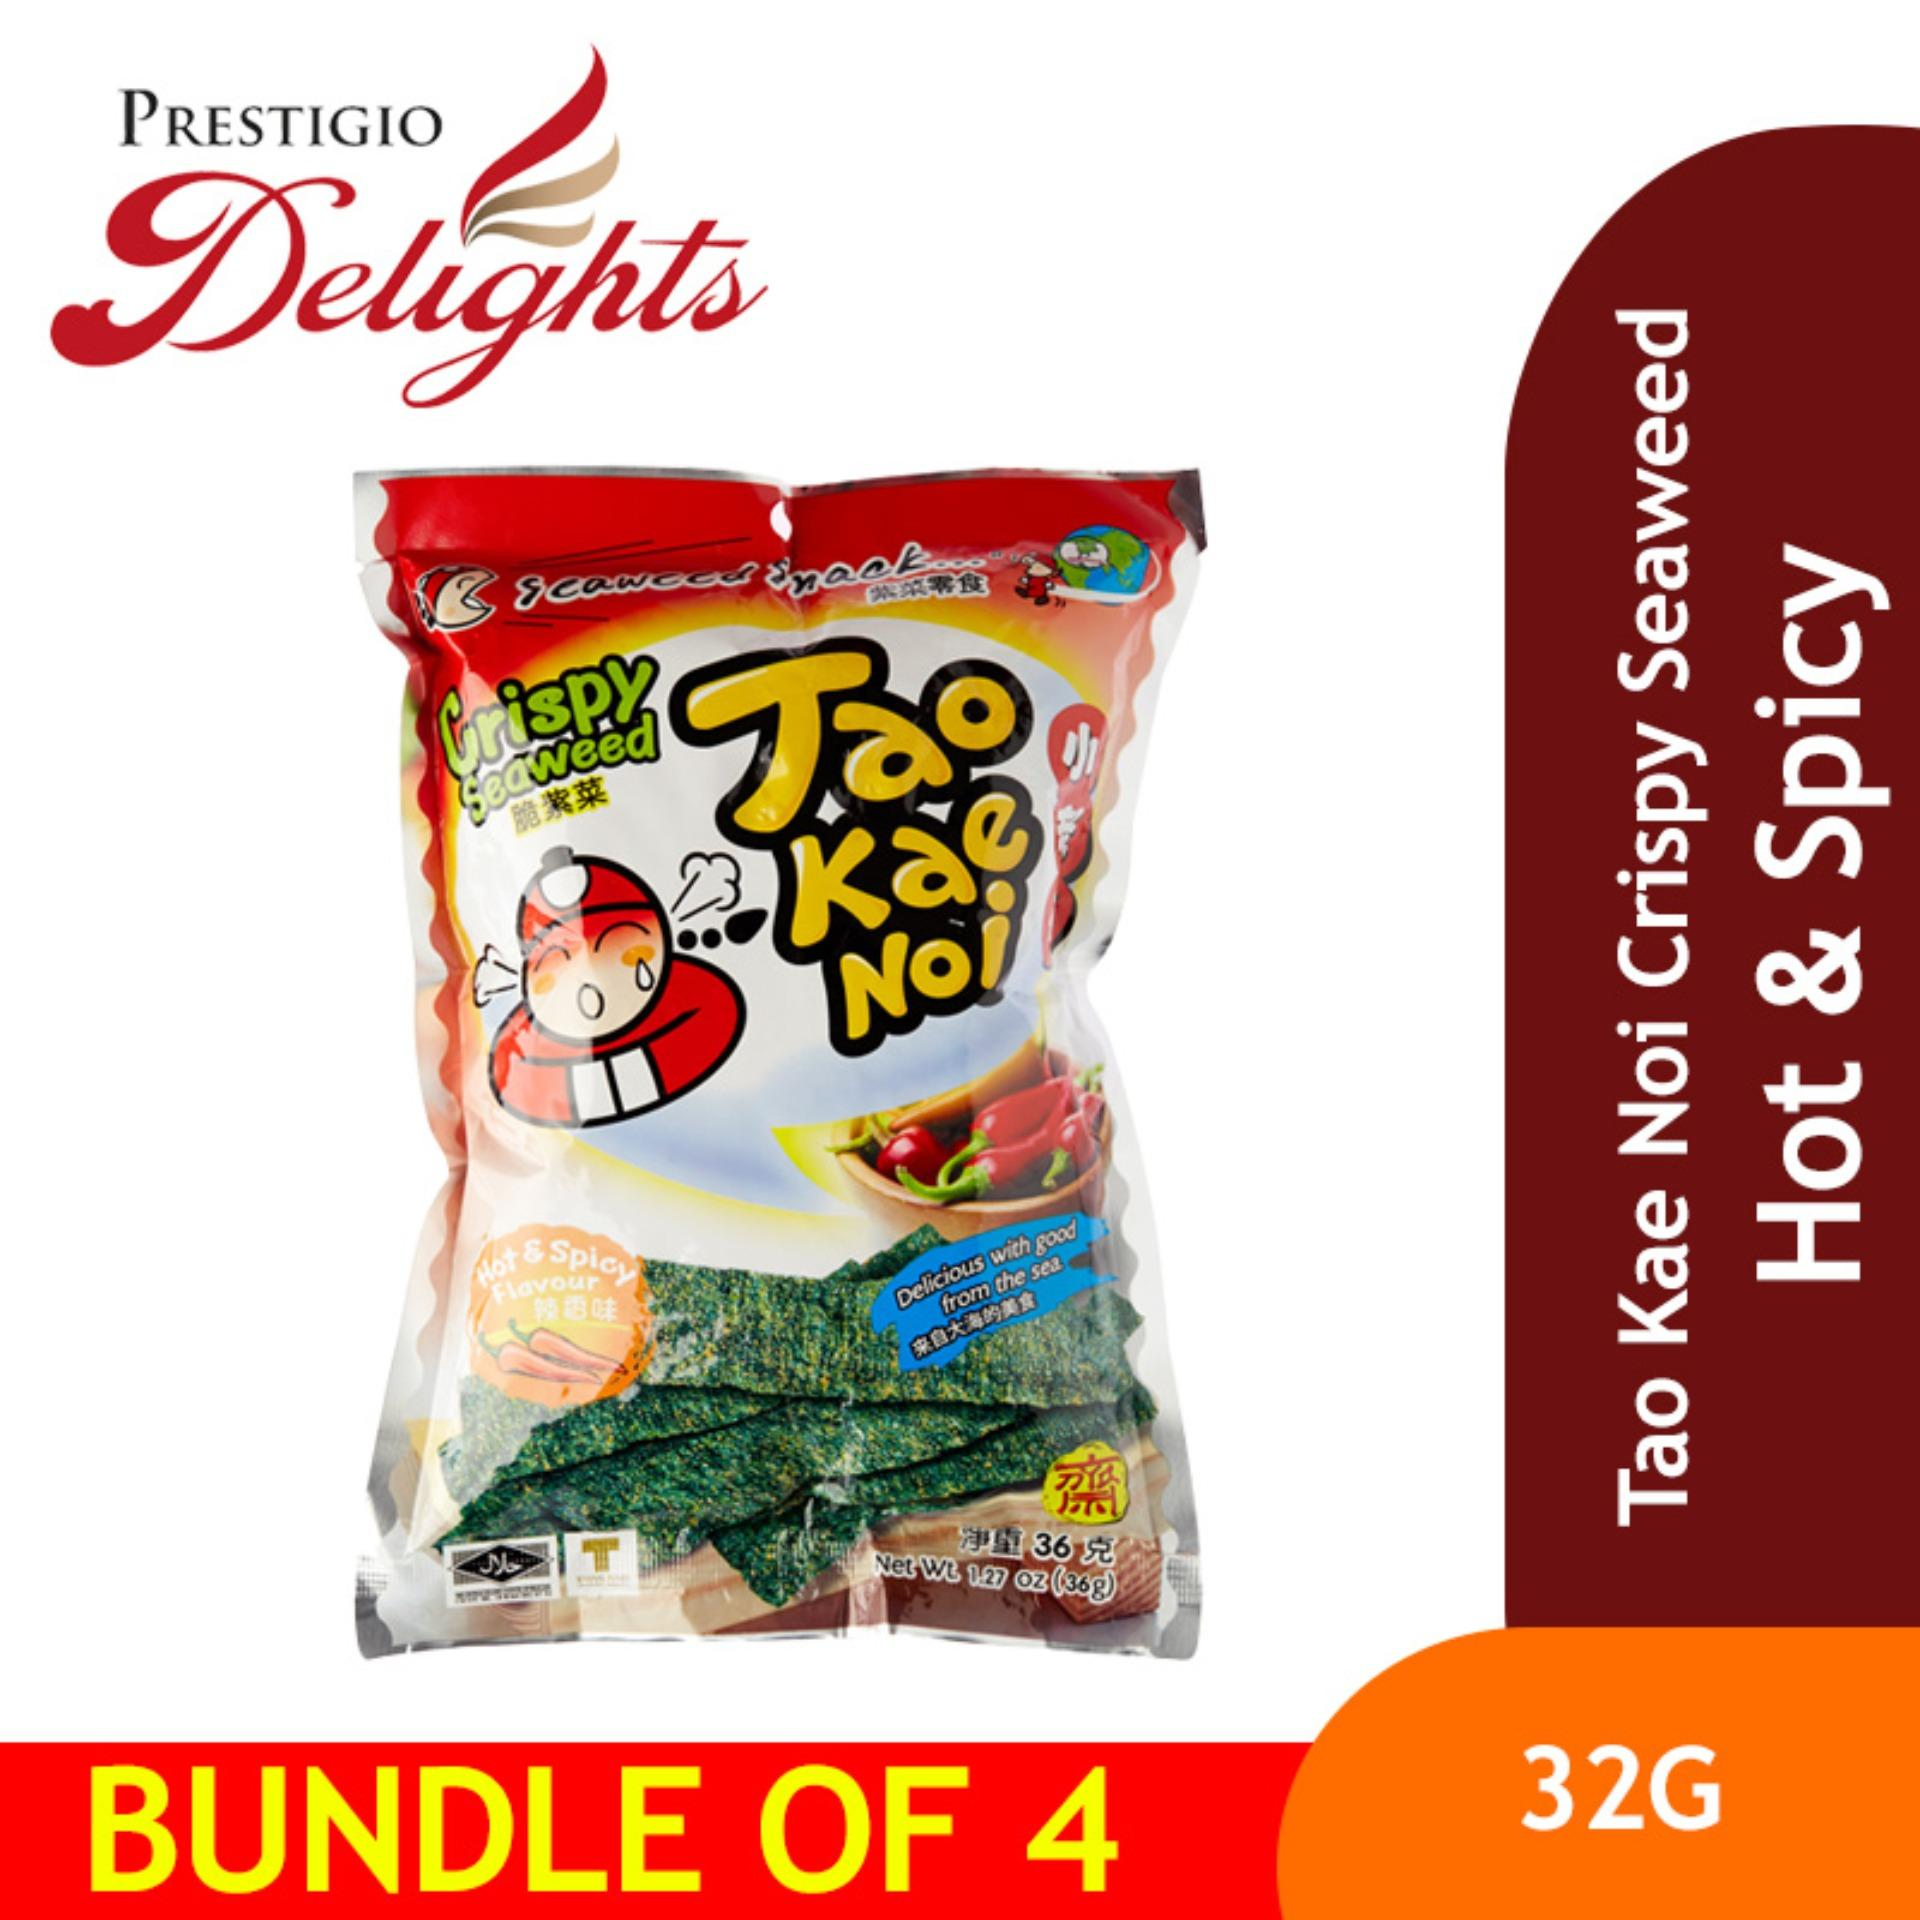 Tao Kae Noi Crispy Seaweed - 32g Hot & Spicy Bundle Of 4 By Prestigio Delights.